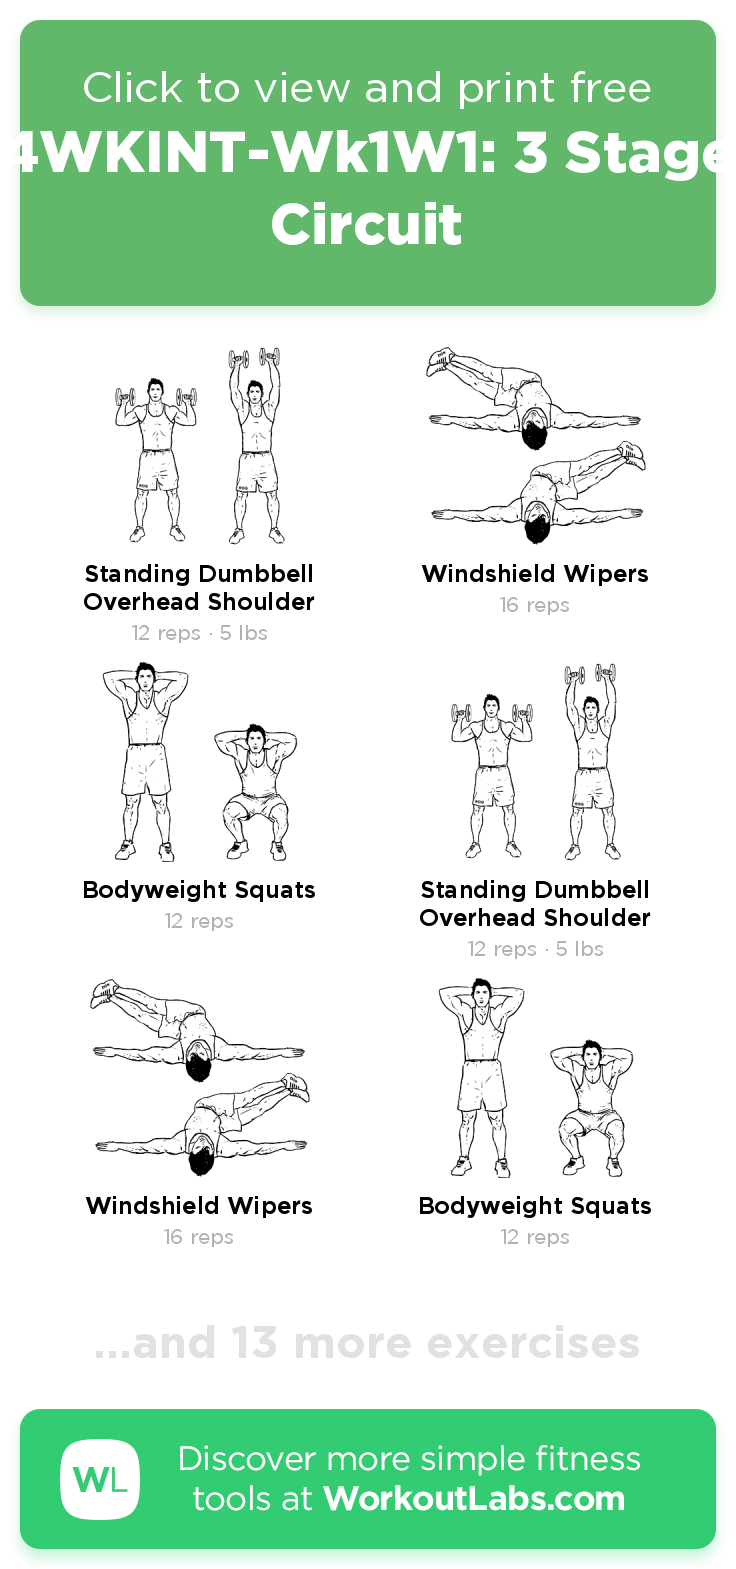 3 Stage Circuit – click to view and print this illustrated exercise